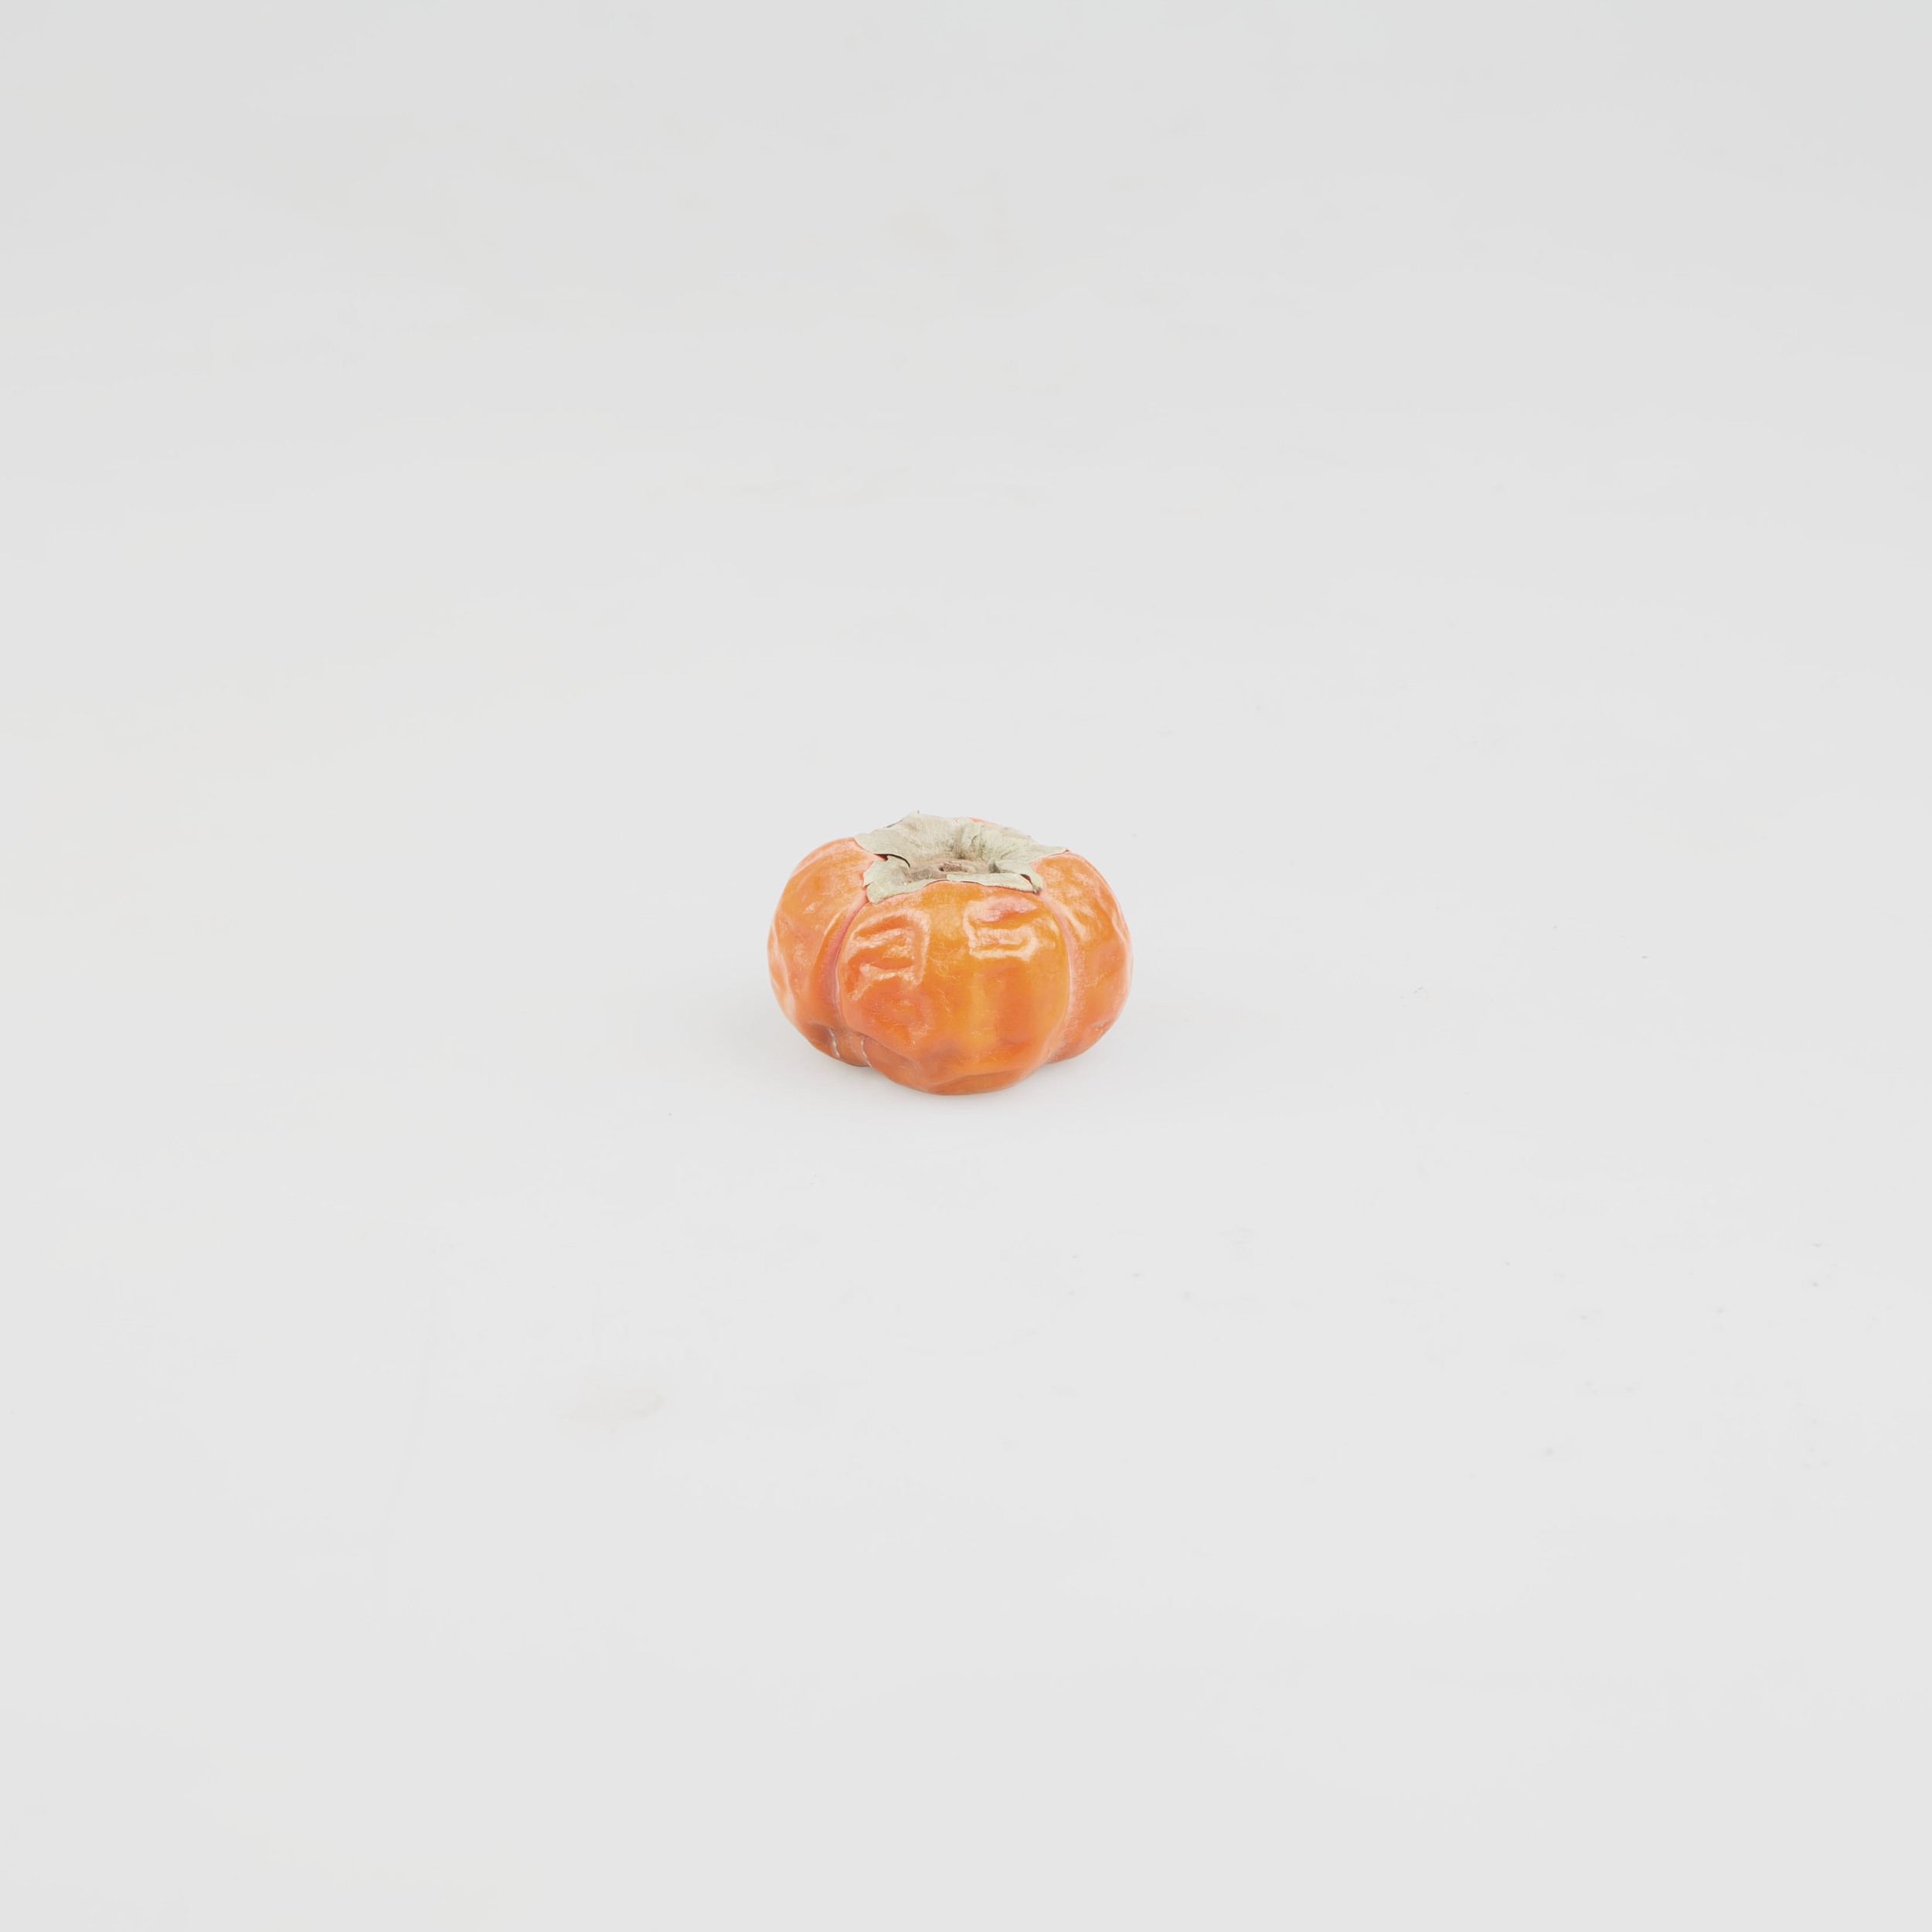 31_Oct_Persimmon copy.jpg